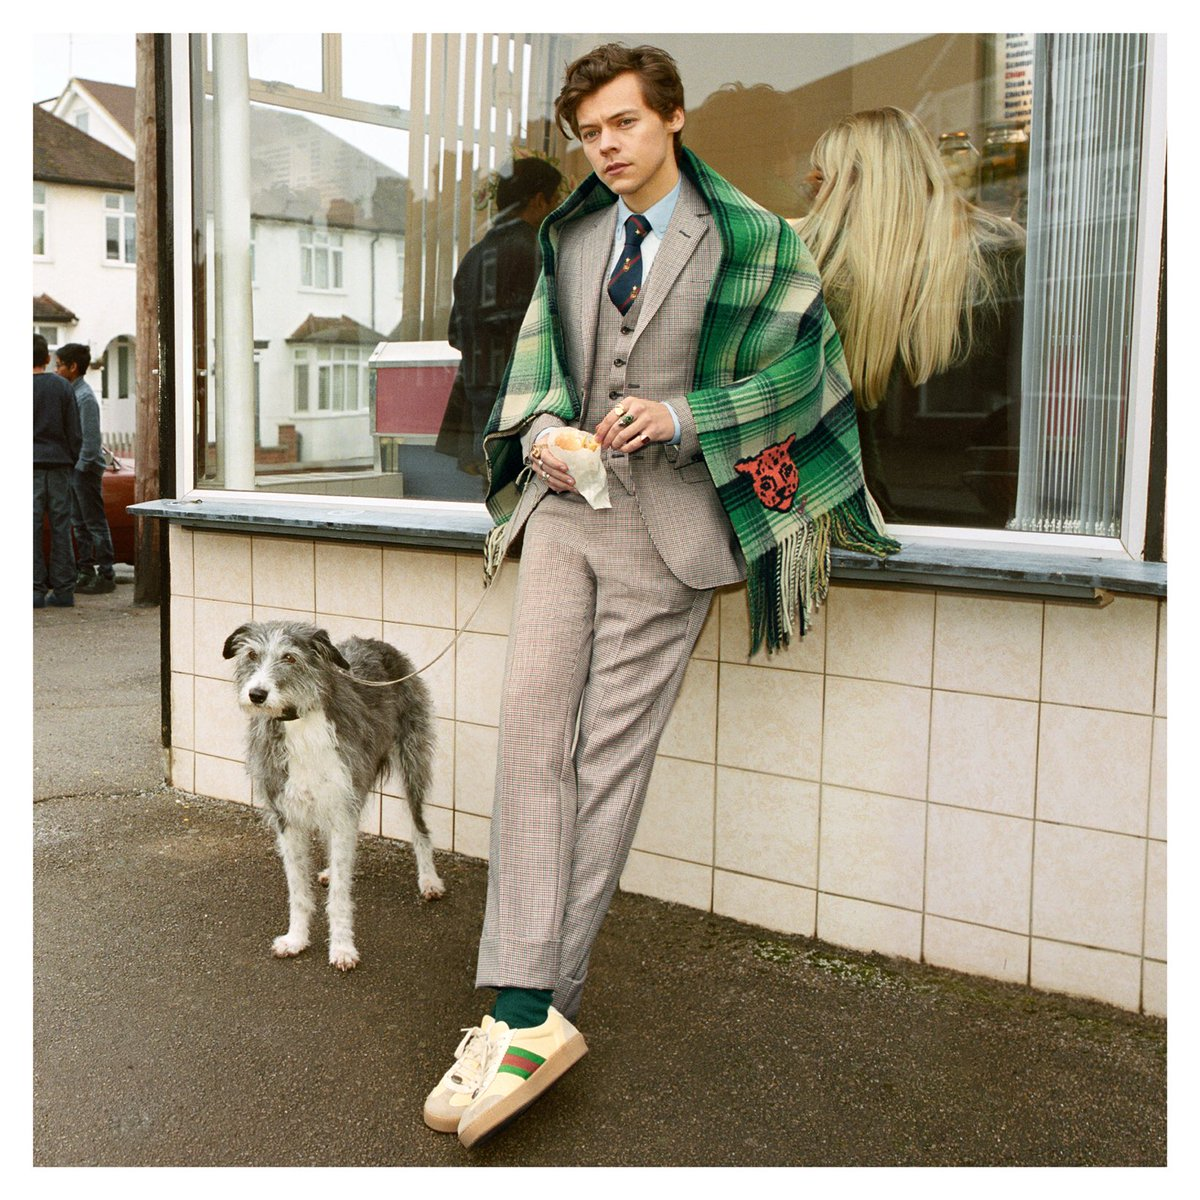 On set at a fish and chip shop in Northern London,  appears in the new  campaign wea#GucciTailoringring the House's latest suiting designs by . Discover mo#AlessandroMichelere  Photographerhttps://t.co/KwJXqTdm8z:  Art Director#GlenLuchford: #ChristopherSimmonds